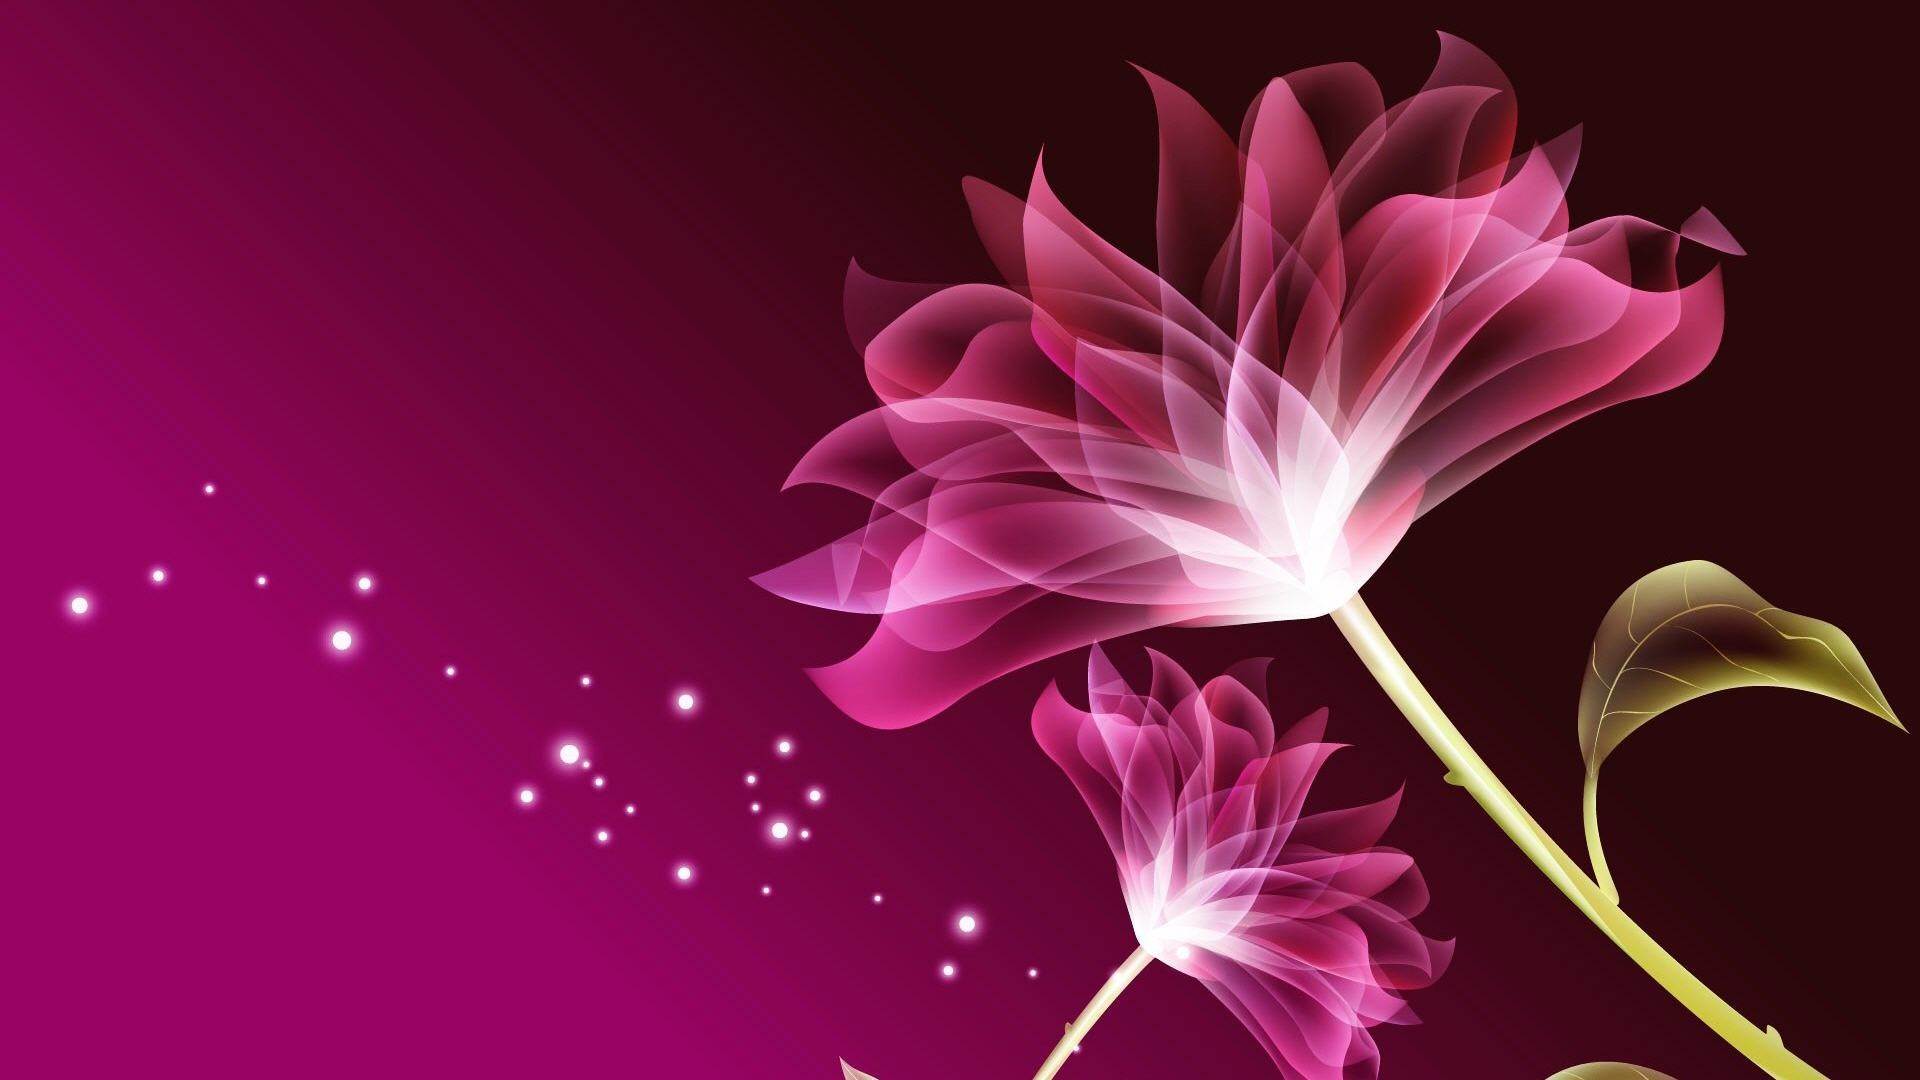 Pictures Of Beautiful Flowers Wallpapers